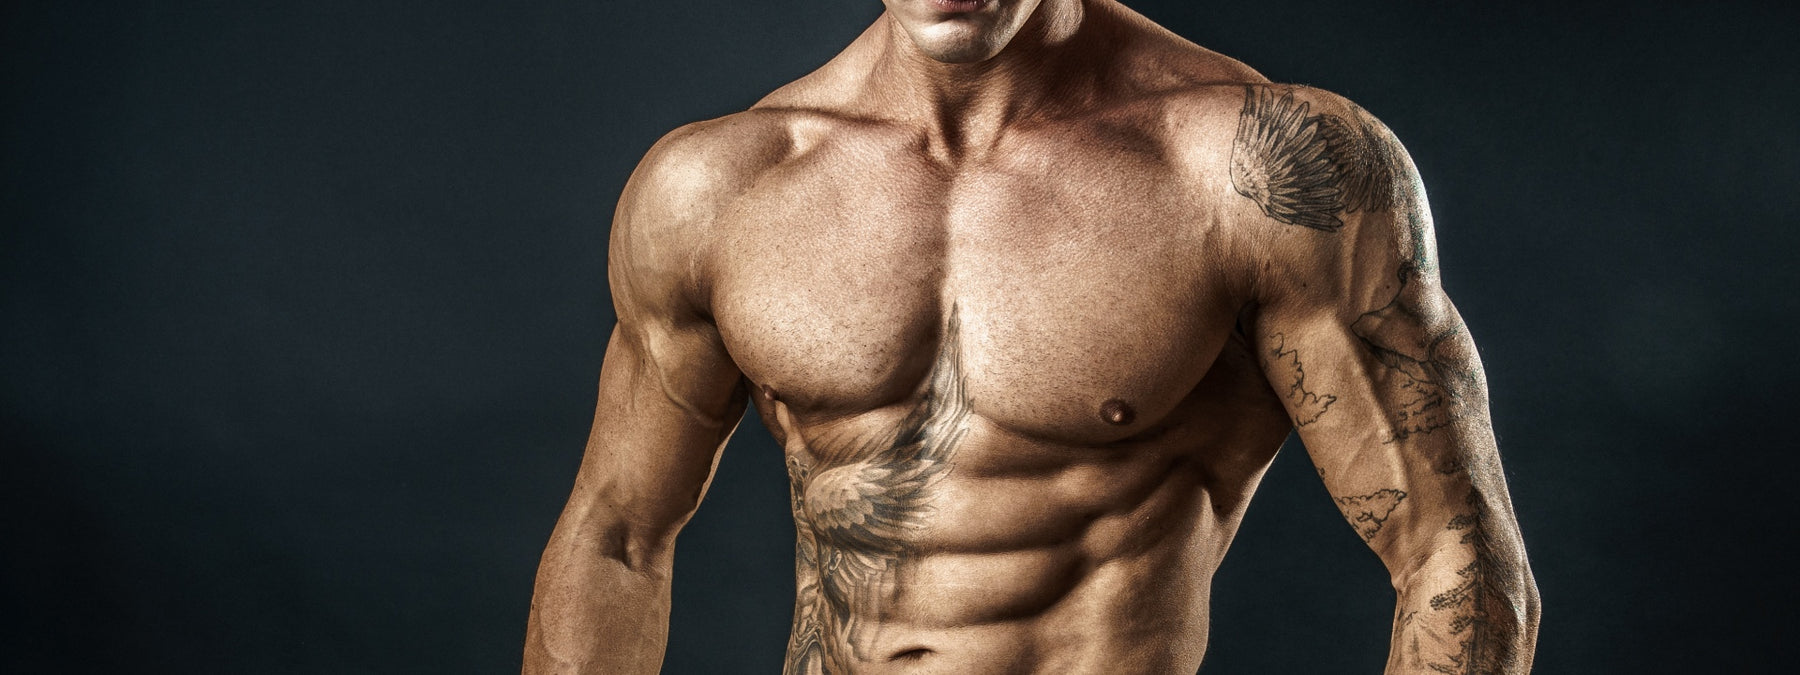 How to Get a Bigger Chest: The Intermediate's Guide